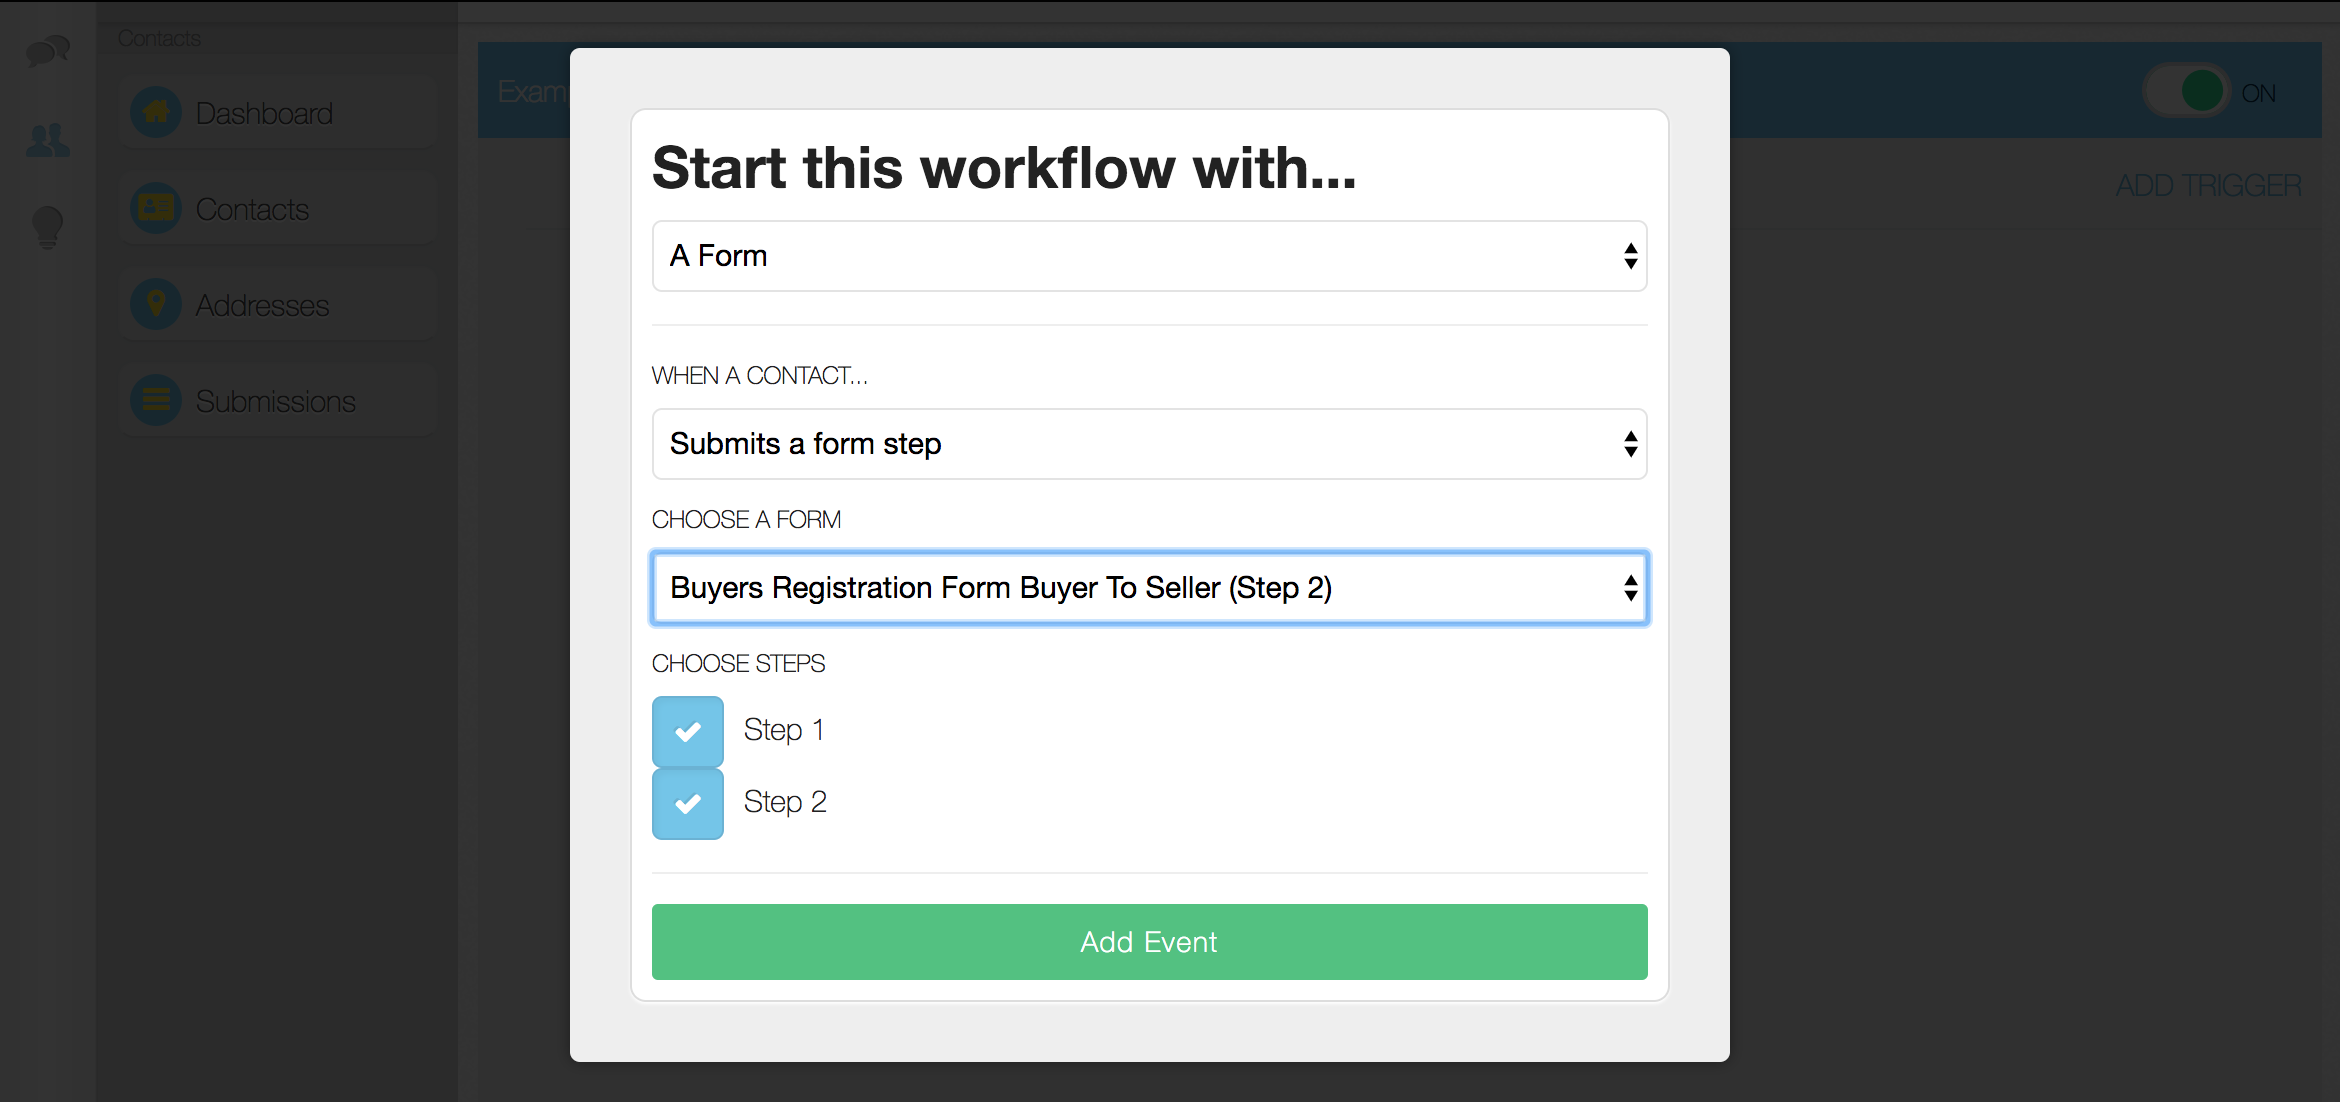 Pick your form's step for the workflow